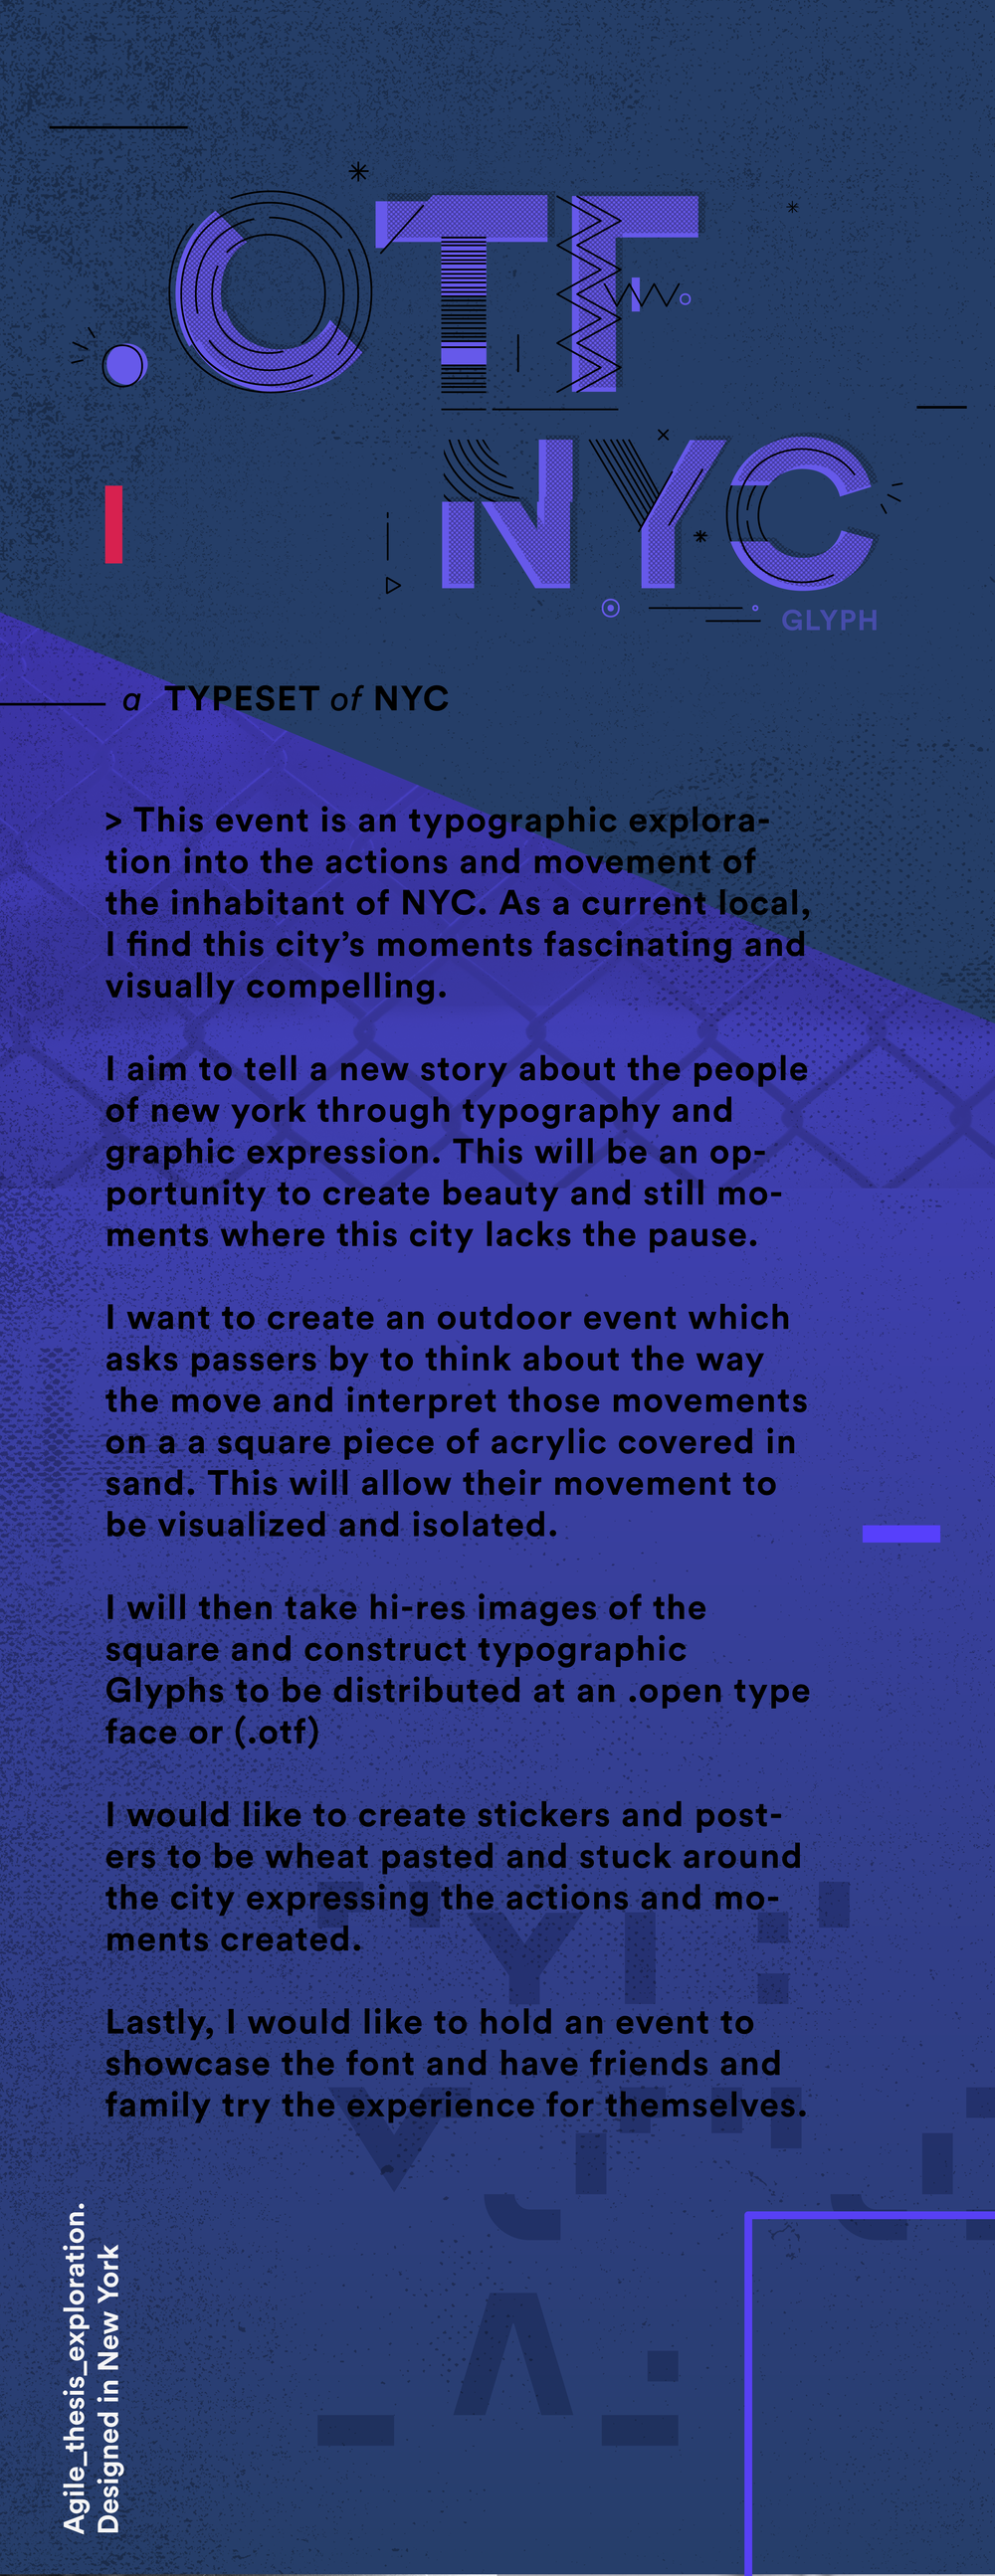 OTF_NYC_SQUARESPACE-02.png